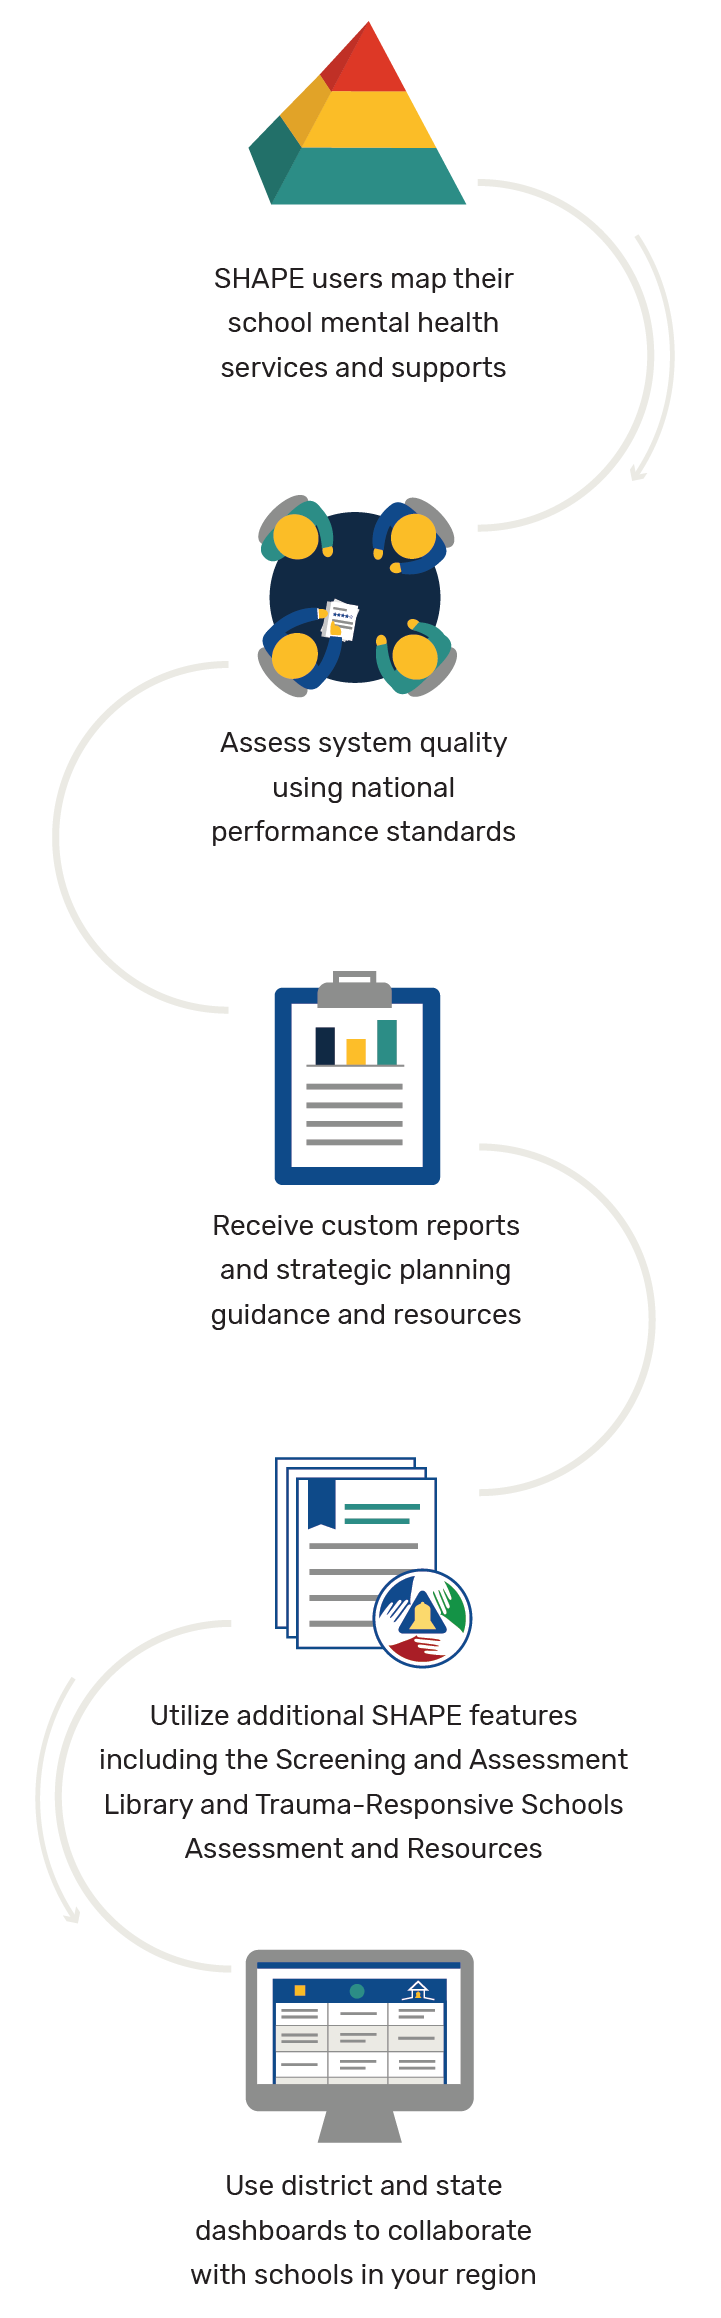 SHAPE – School Health Assessment and Performance Evaluation